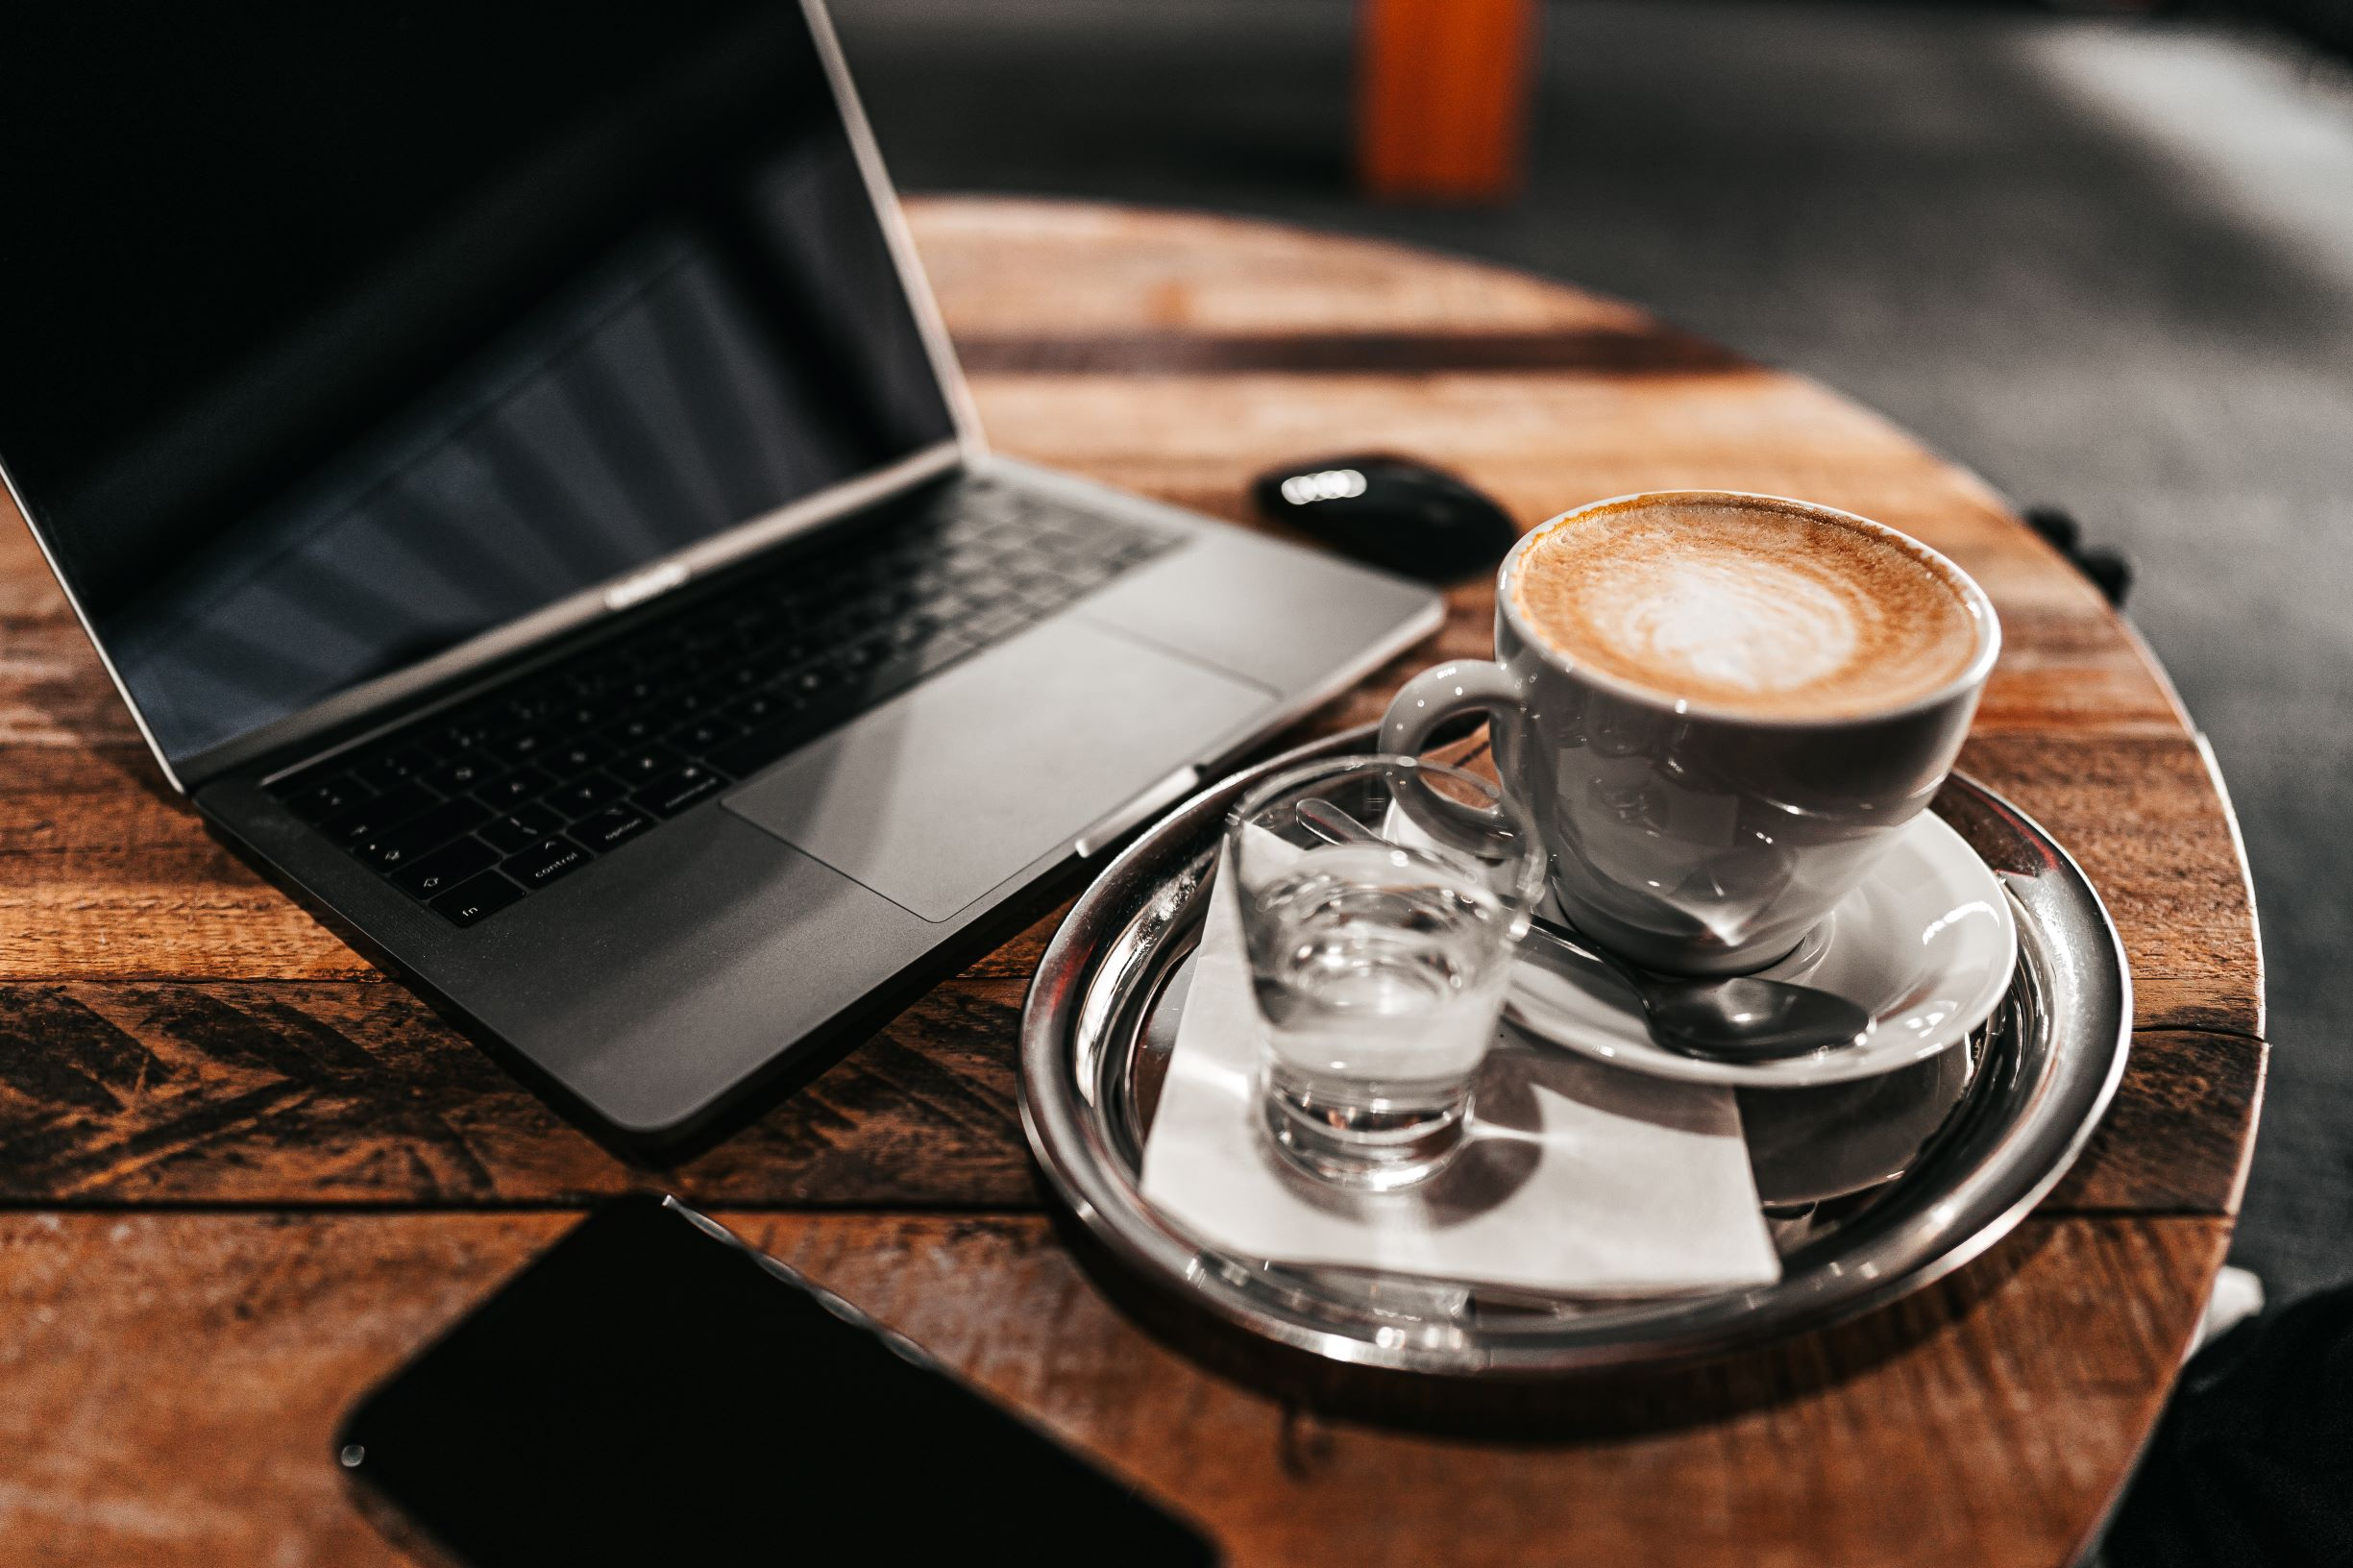 laptop and a cappuccino on wood table